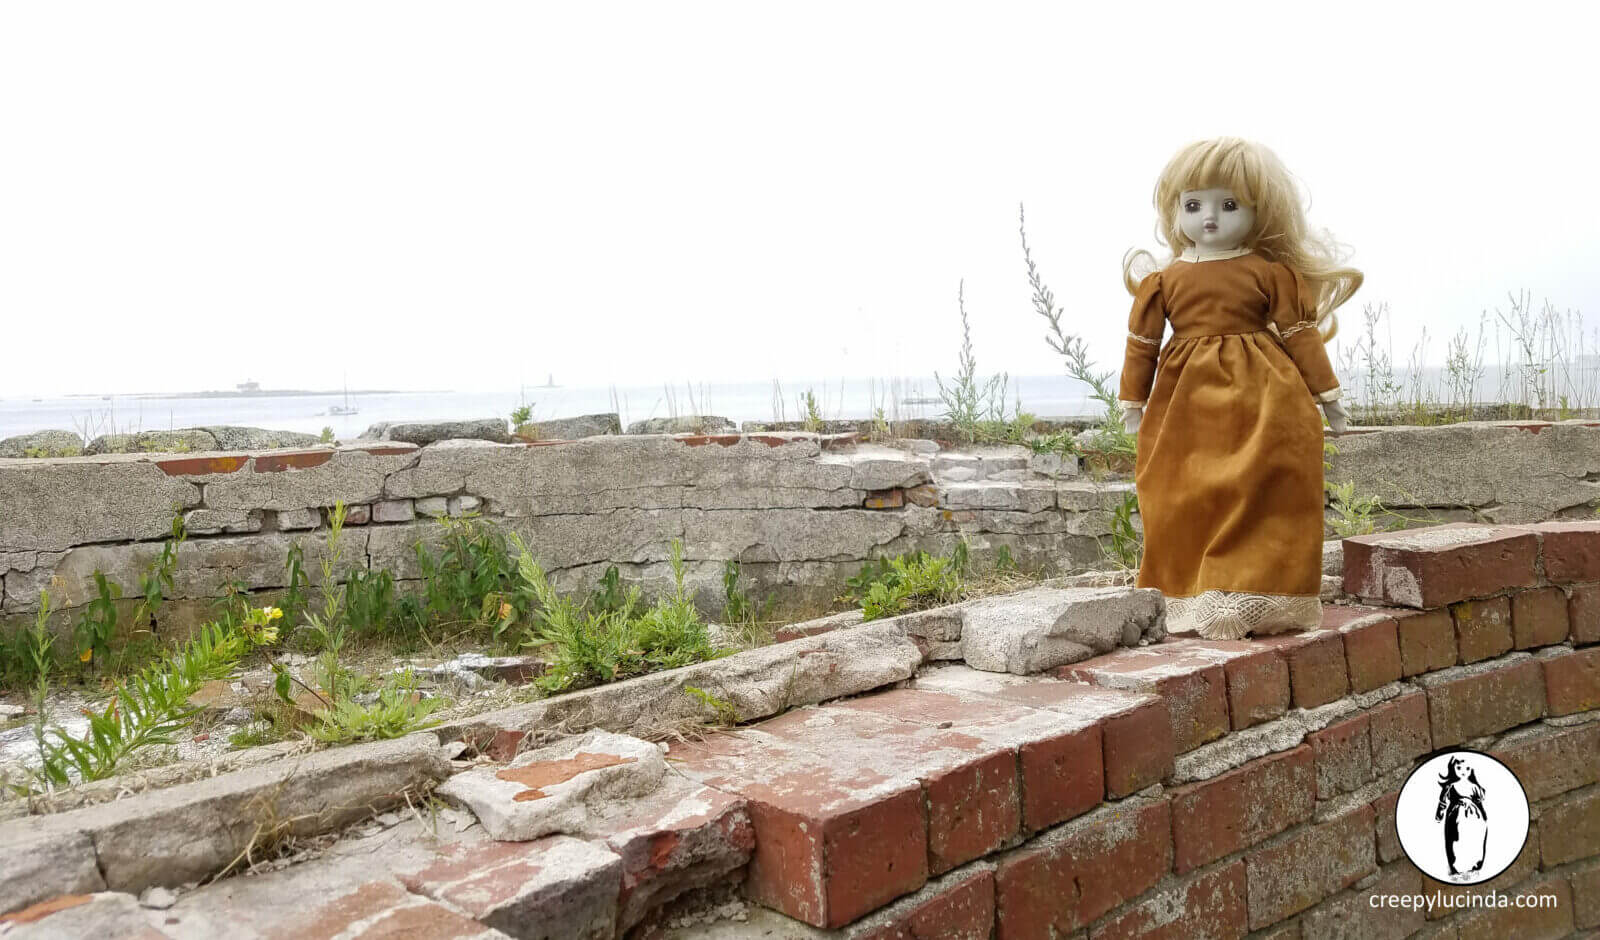 Creepy doll standing on a brick wall